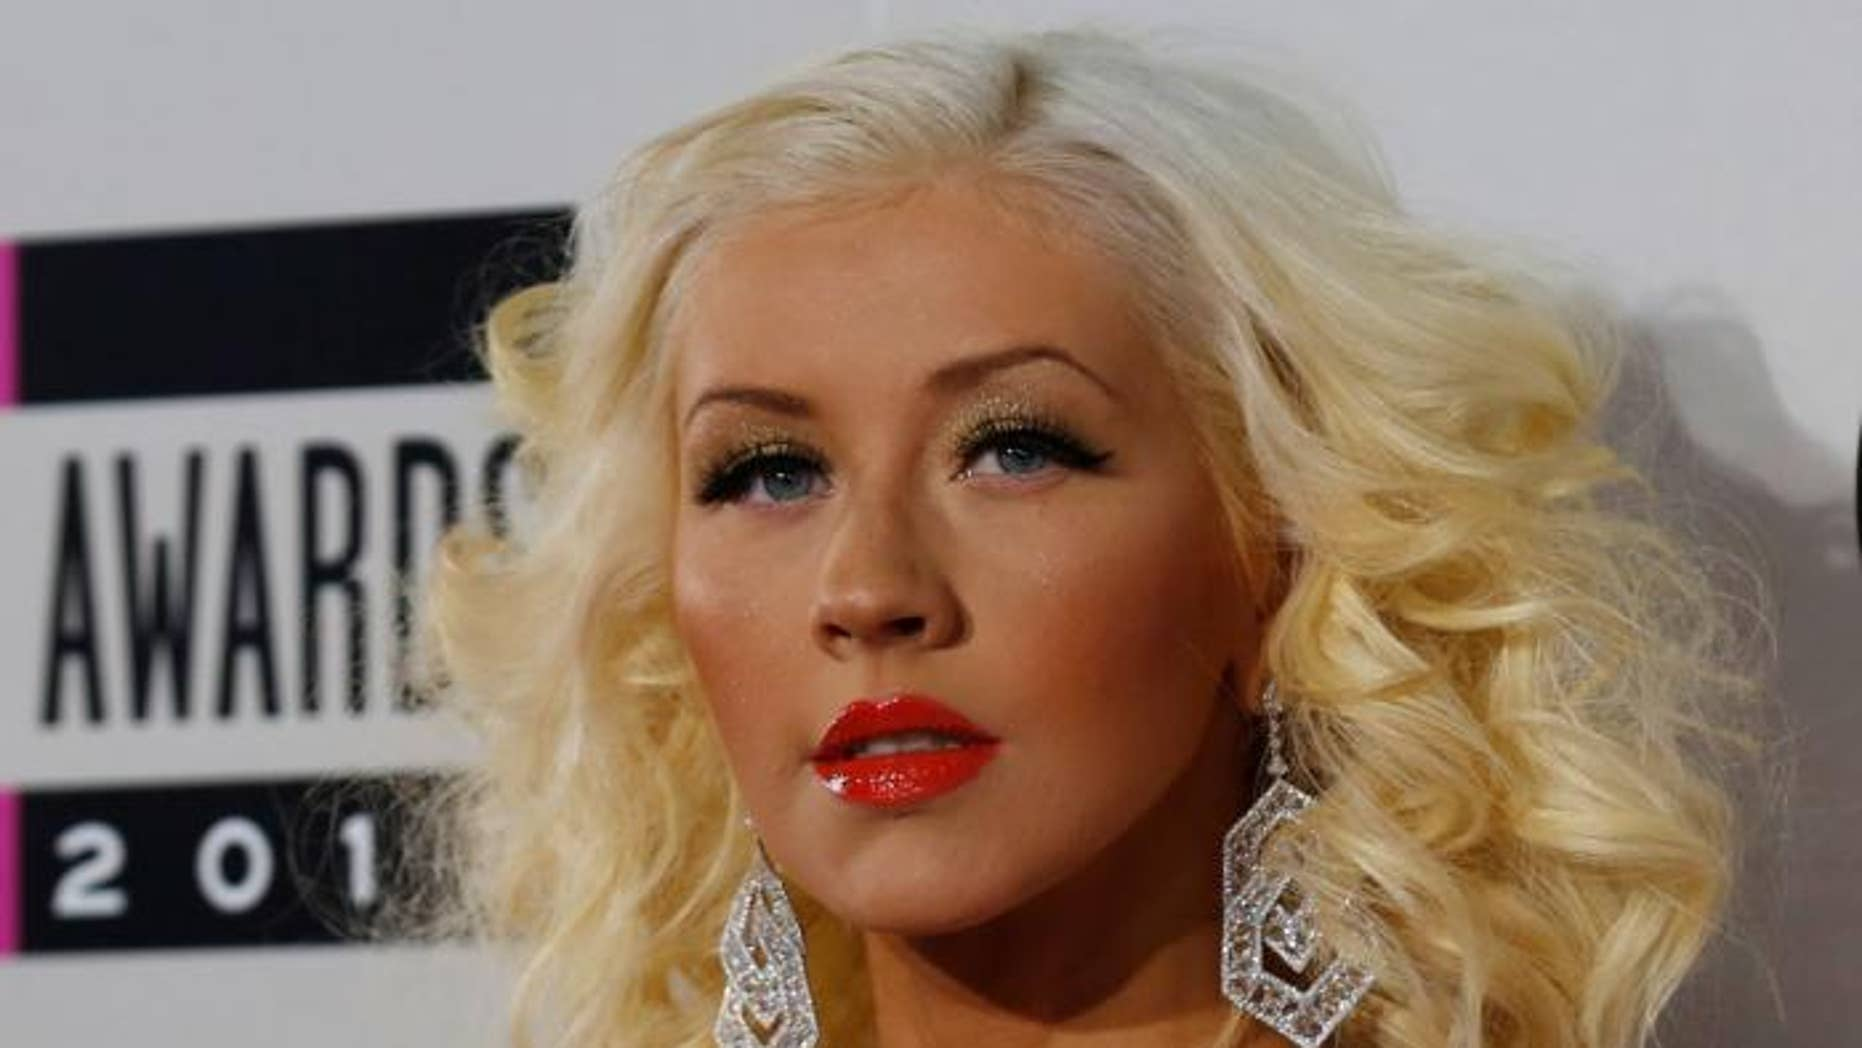 Christina Aguilera revealed on Twitter Thursday that she lost her voice.